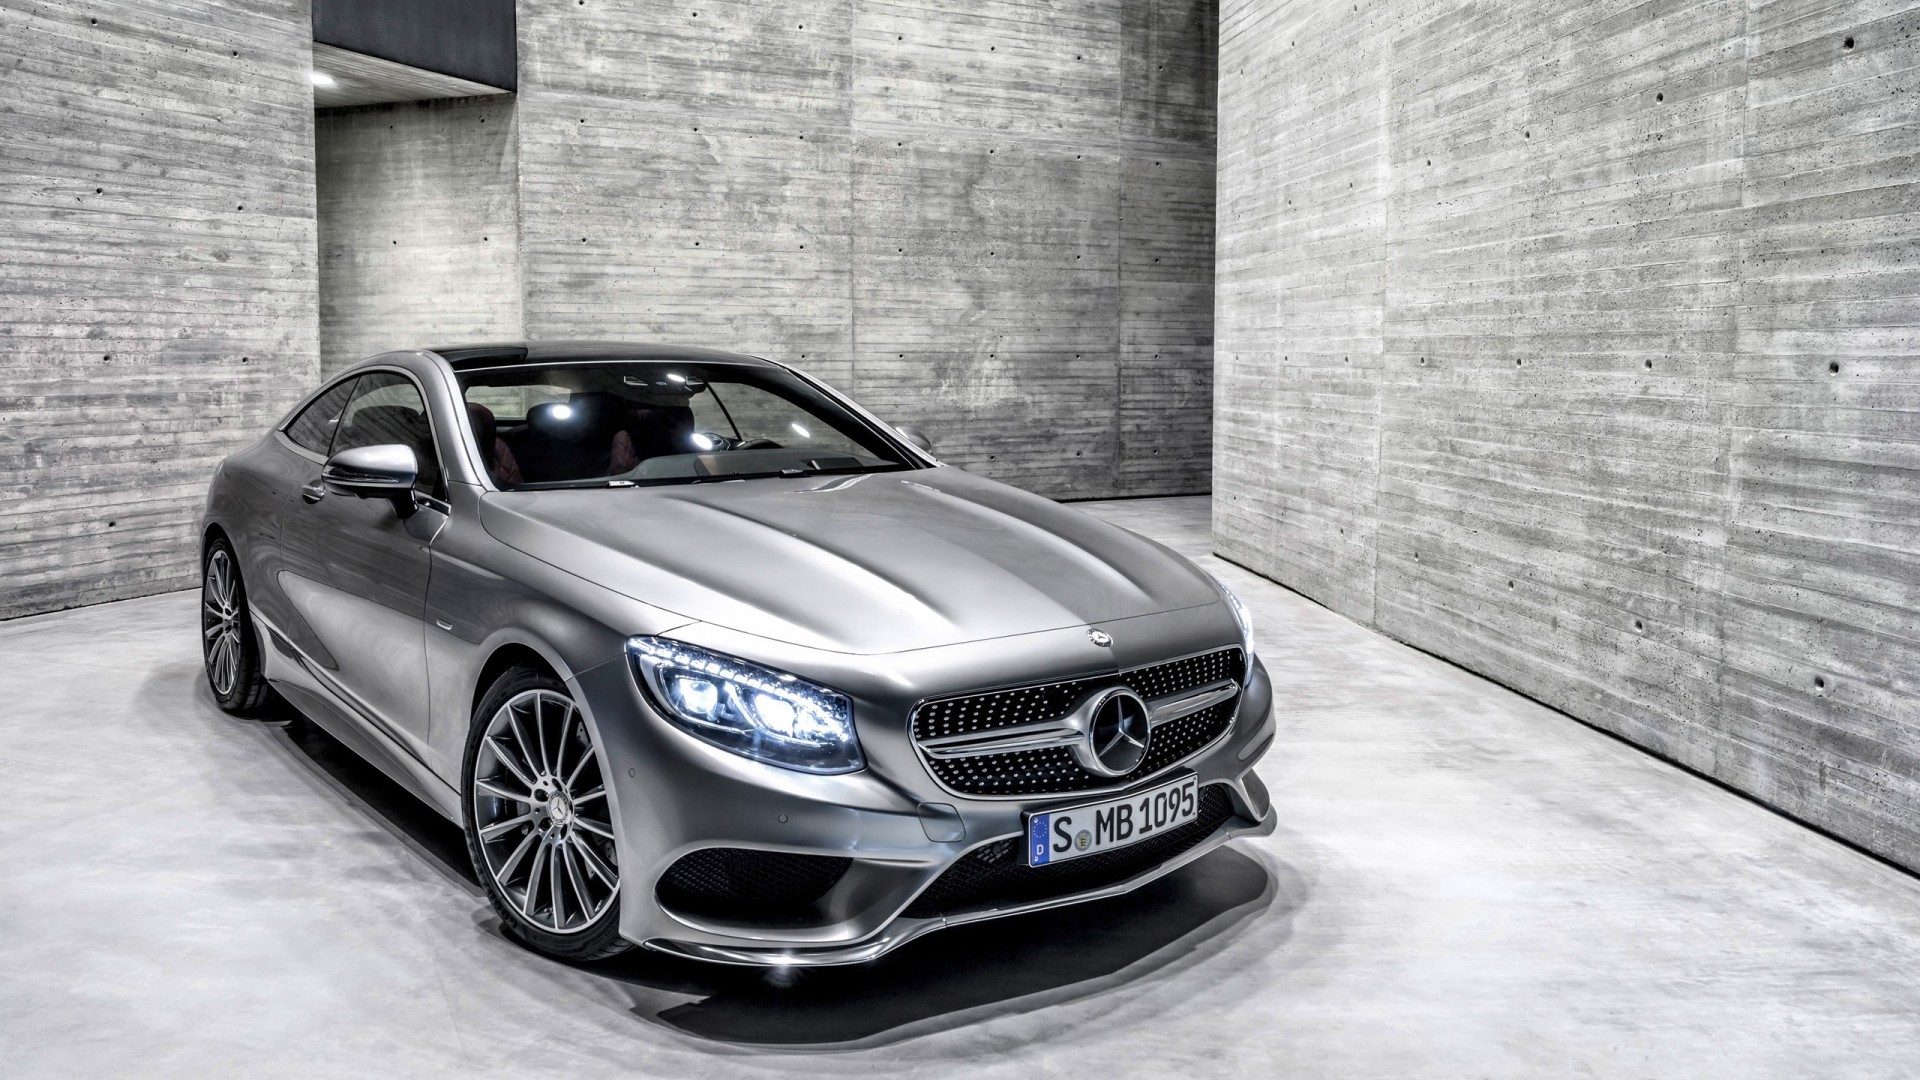 2014 mercedes benz s class coupe wallpaper hd car. Black Bedroom Furniture Sets. Home Design Ideas